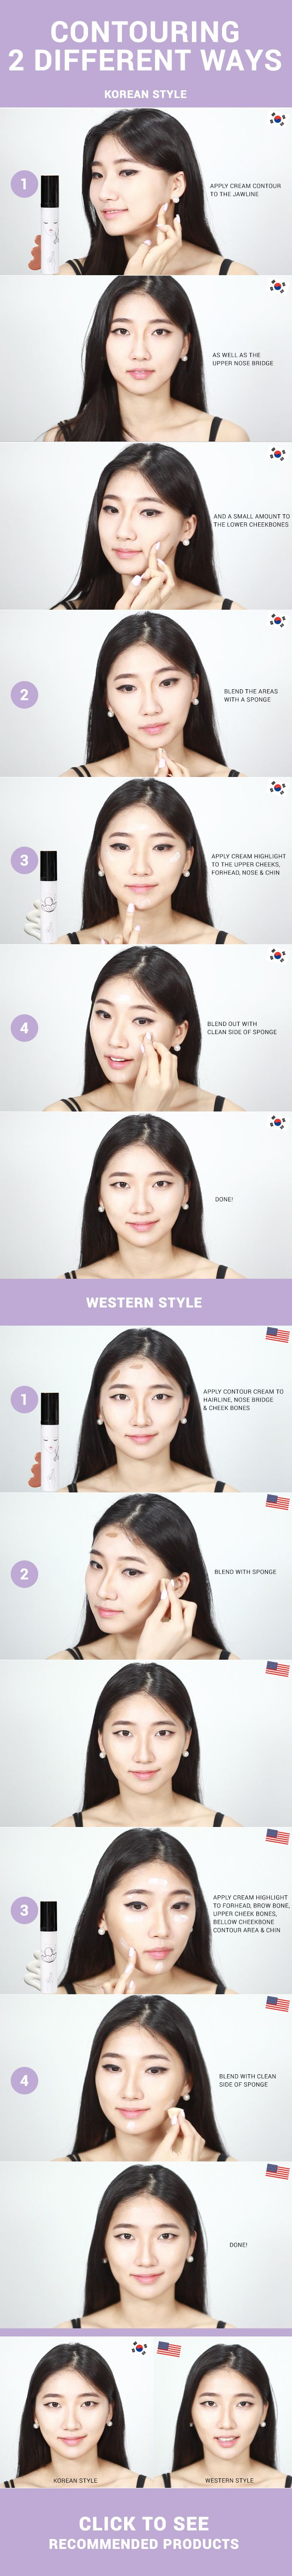 Most of us are familiar with Western style makeup contouring, but it doesn't...